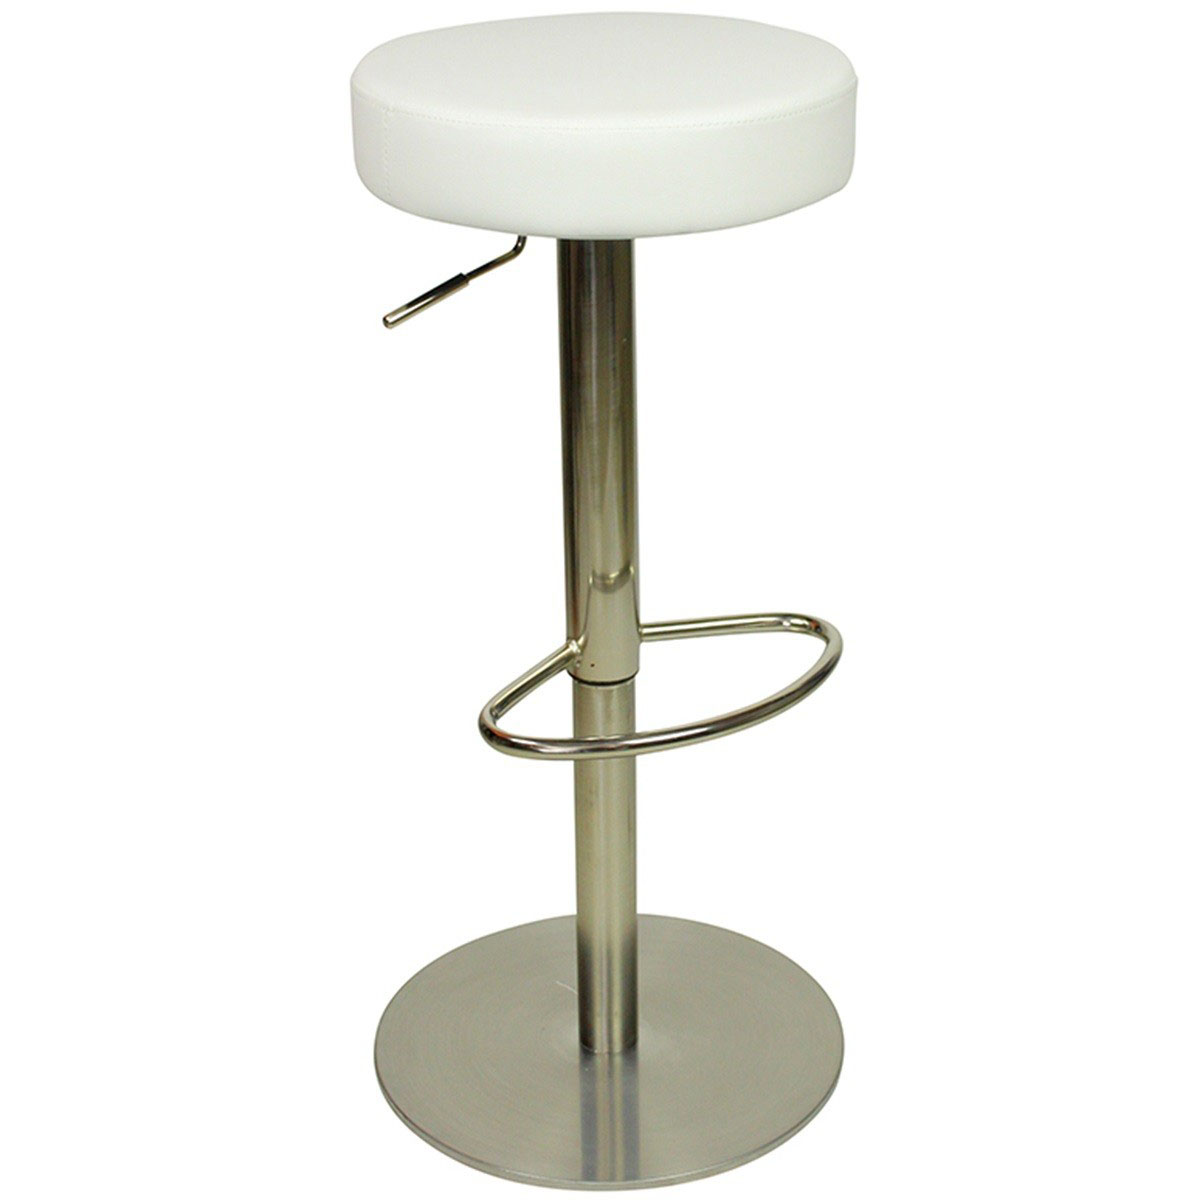 Deluxe Semplice Bar Stool - White Product Image